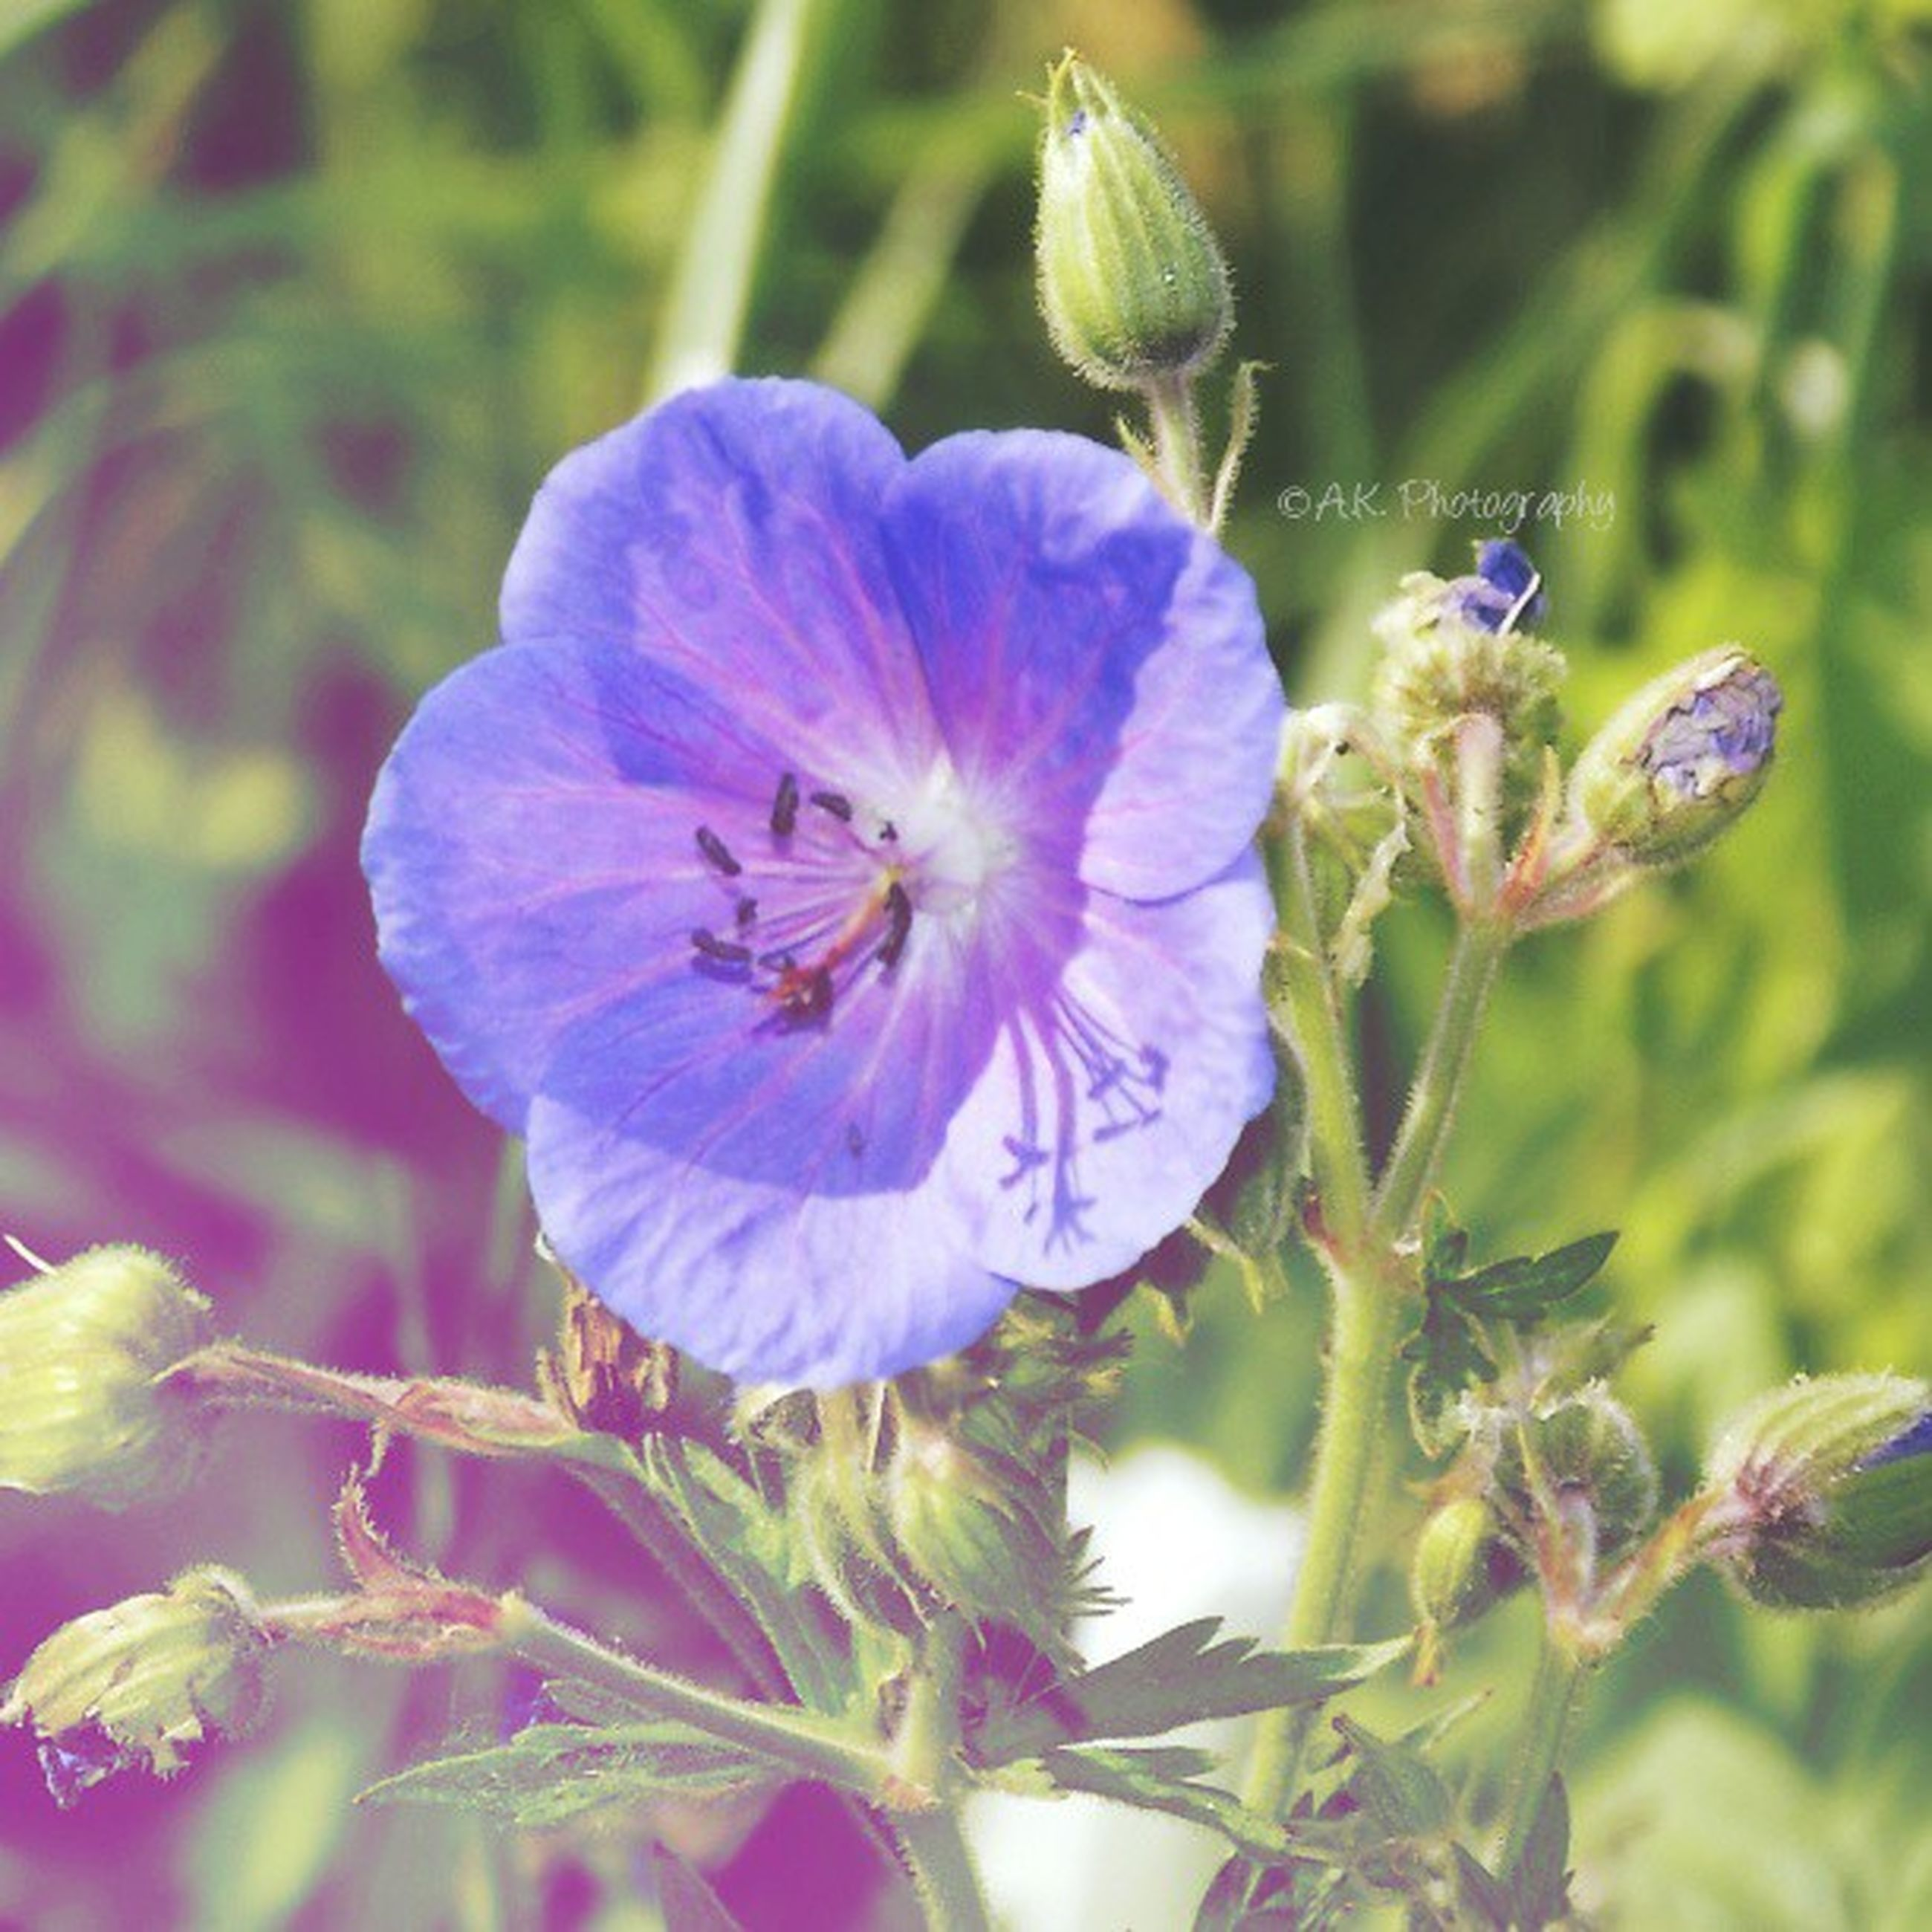 flower, freshness, purple, petal, fragility, growth, flower head, focus on foreground, close-up, beauty in nature, blooming, nature, plant, in bloom, stem, single flower, pollen, day, outdoors, blossom